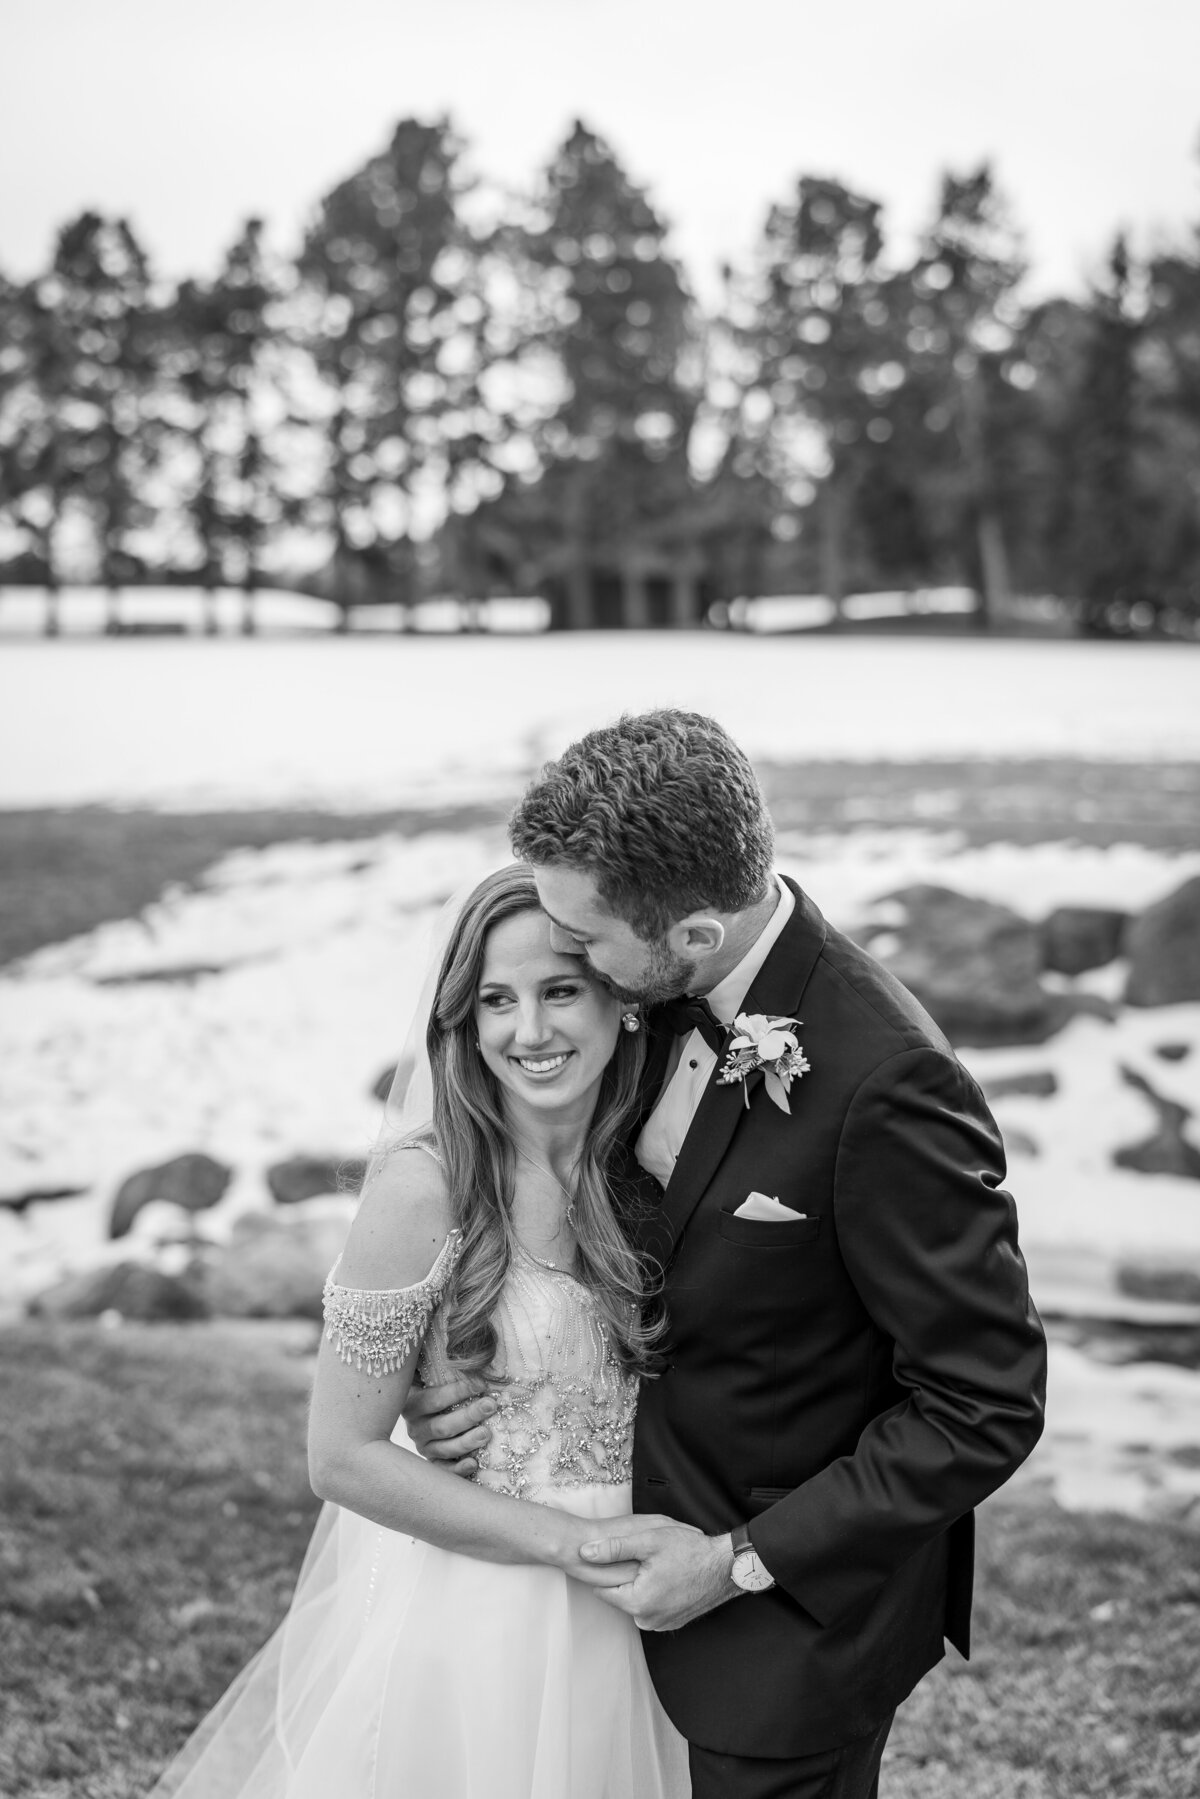 Colorado wedding photographer carter rose texas -0012